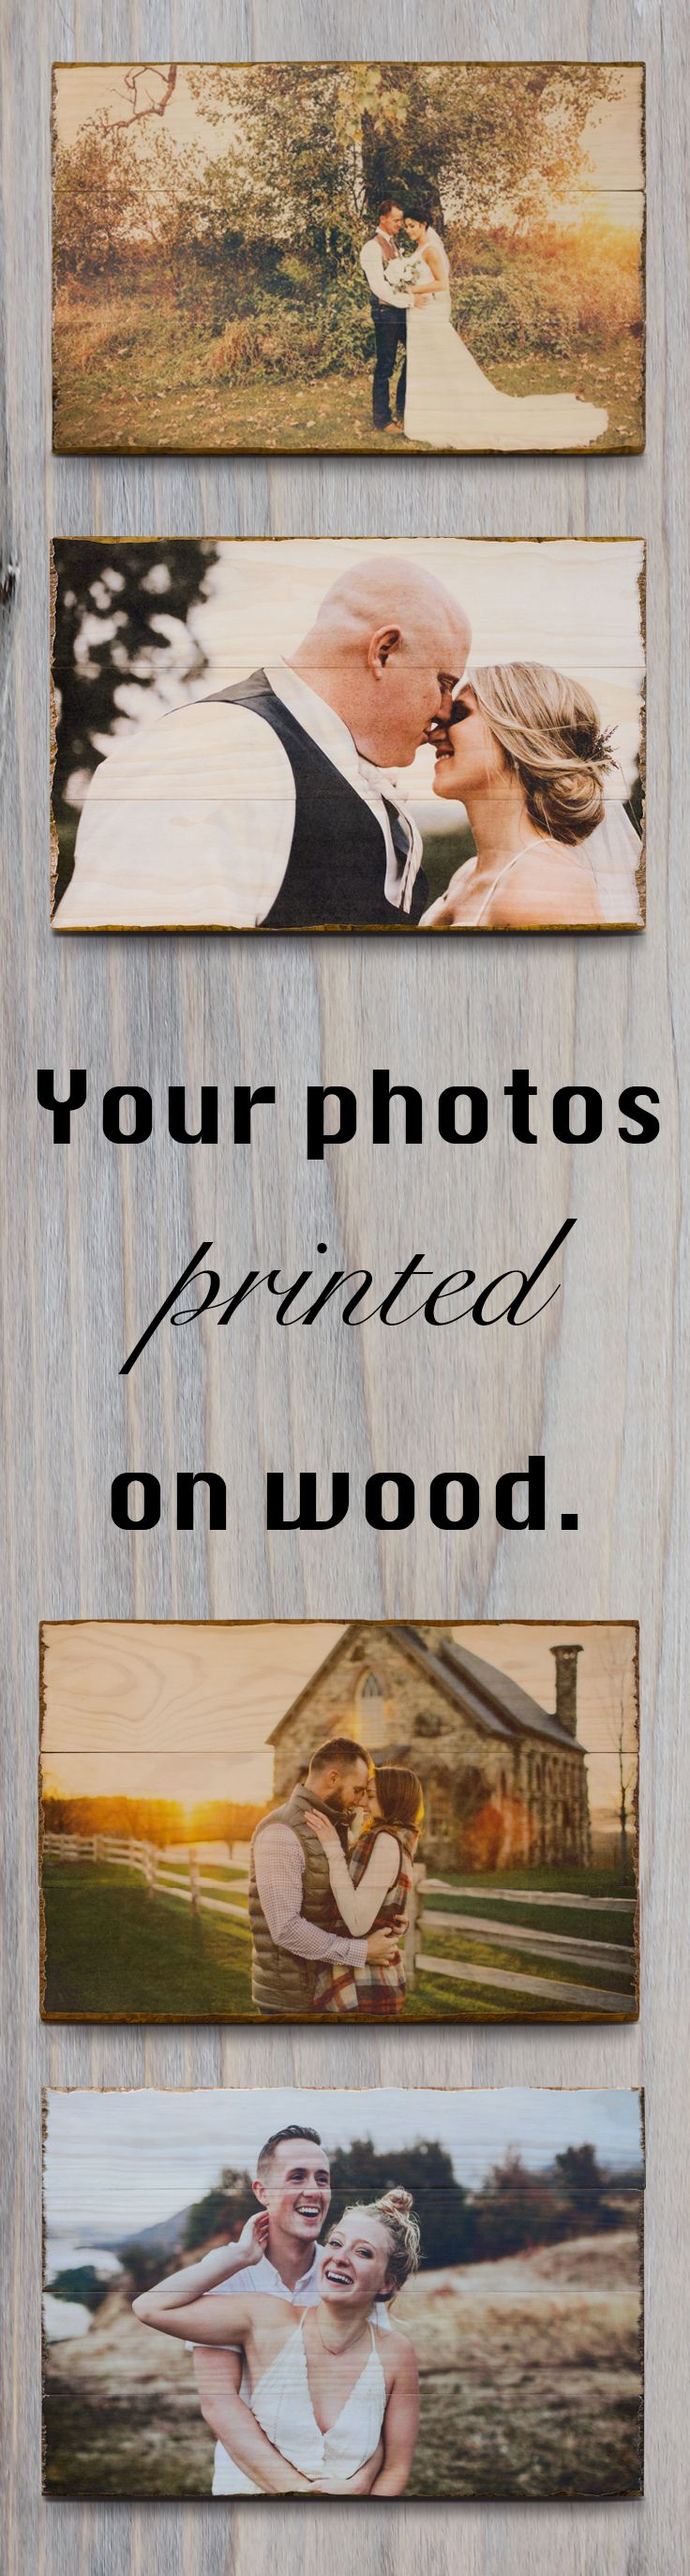 We print your photos on wood. Our custom woodprints are made up of multiple planks of rustic wood and come ready to hang on your wall. Every woodprint is coated with a protective layer of matte finish to ensure that they are both scratch and water resistant. Unlike many companies who print on plywood, we have chosen to use solid planks of Radiata Pine imported from New Zealand.  Every woodprint is hand-crafted, making each piece incredibly unique.